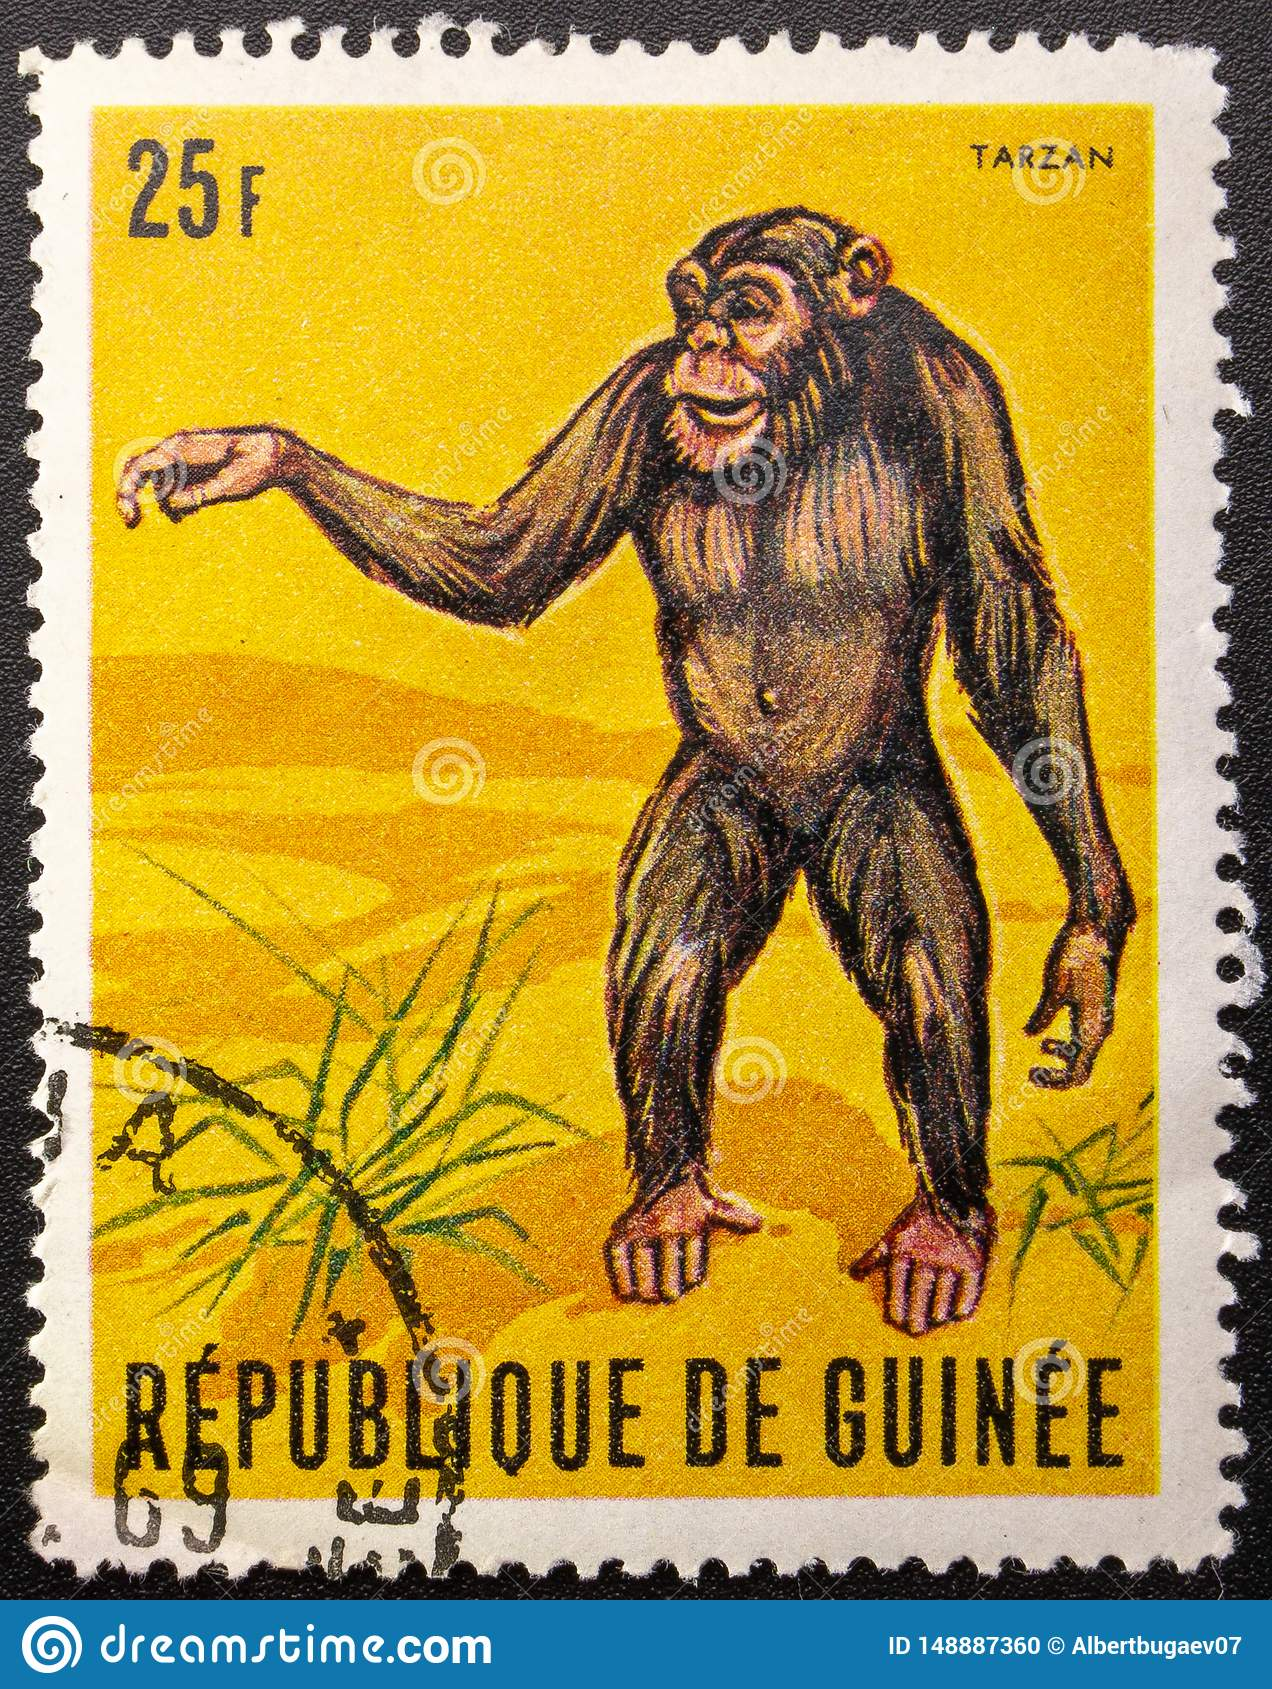 Postage Stamp. 1969. Republic of Guinea. Chimpanzee Tarzan